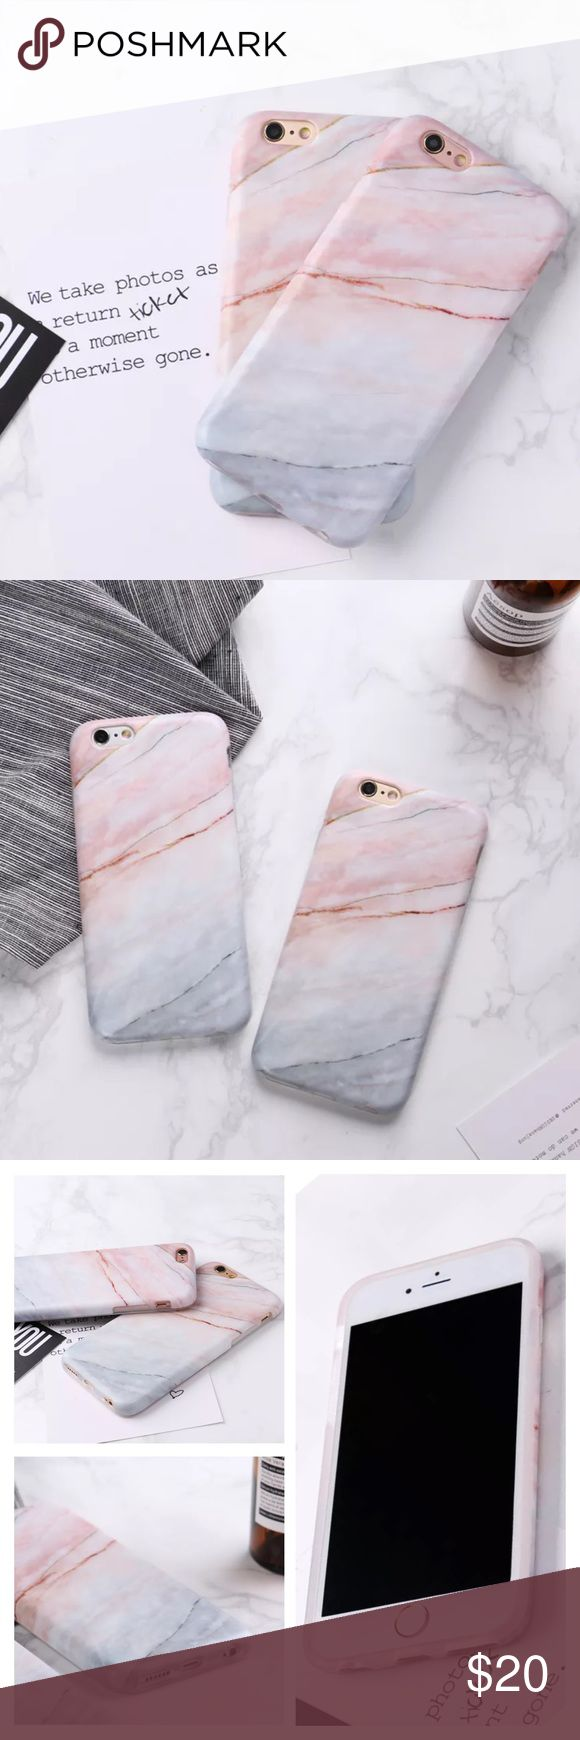 Marble Silicone IPhone Case Protective Cover •Marble iPhone Case• Pink/White Silicone Protective Cover Available for iPhone 7/7s Plus (Also available for iPhone 6/6s & 6/6s Plus. See other listings) Beautiful marble inspired case, with Pink an